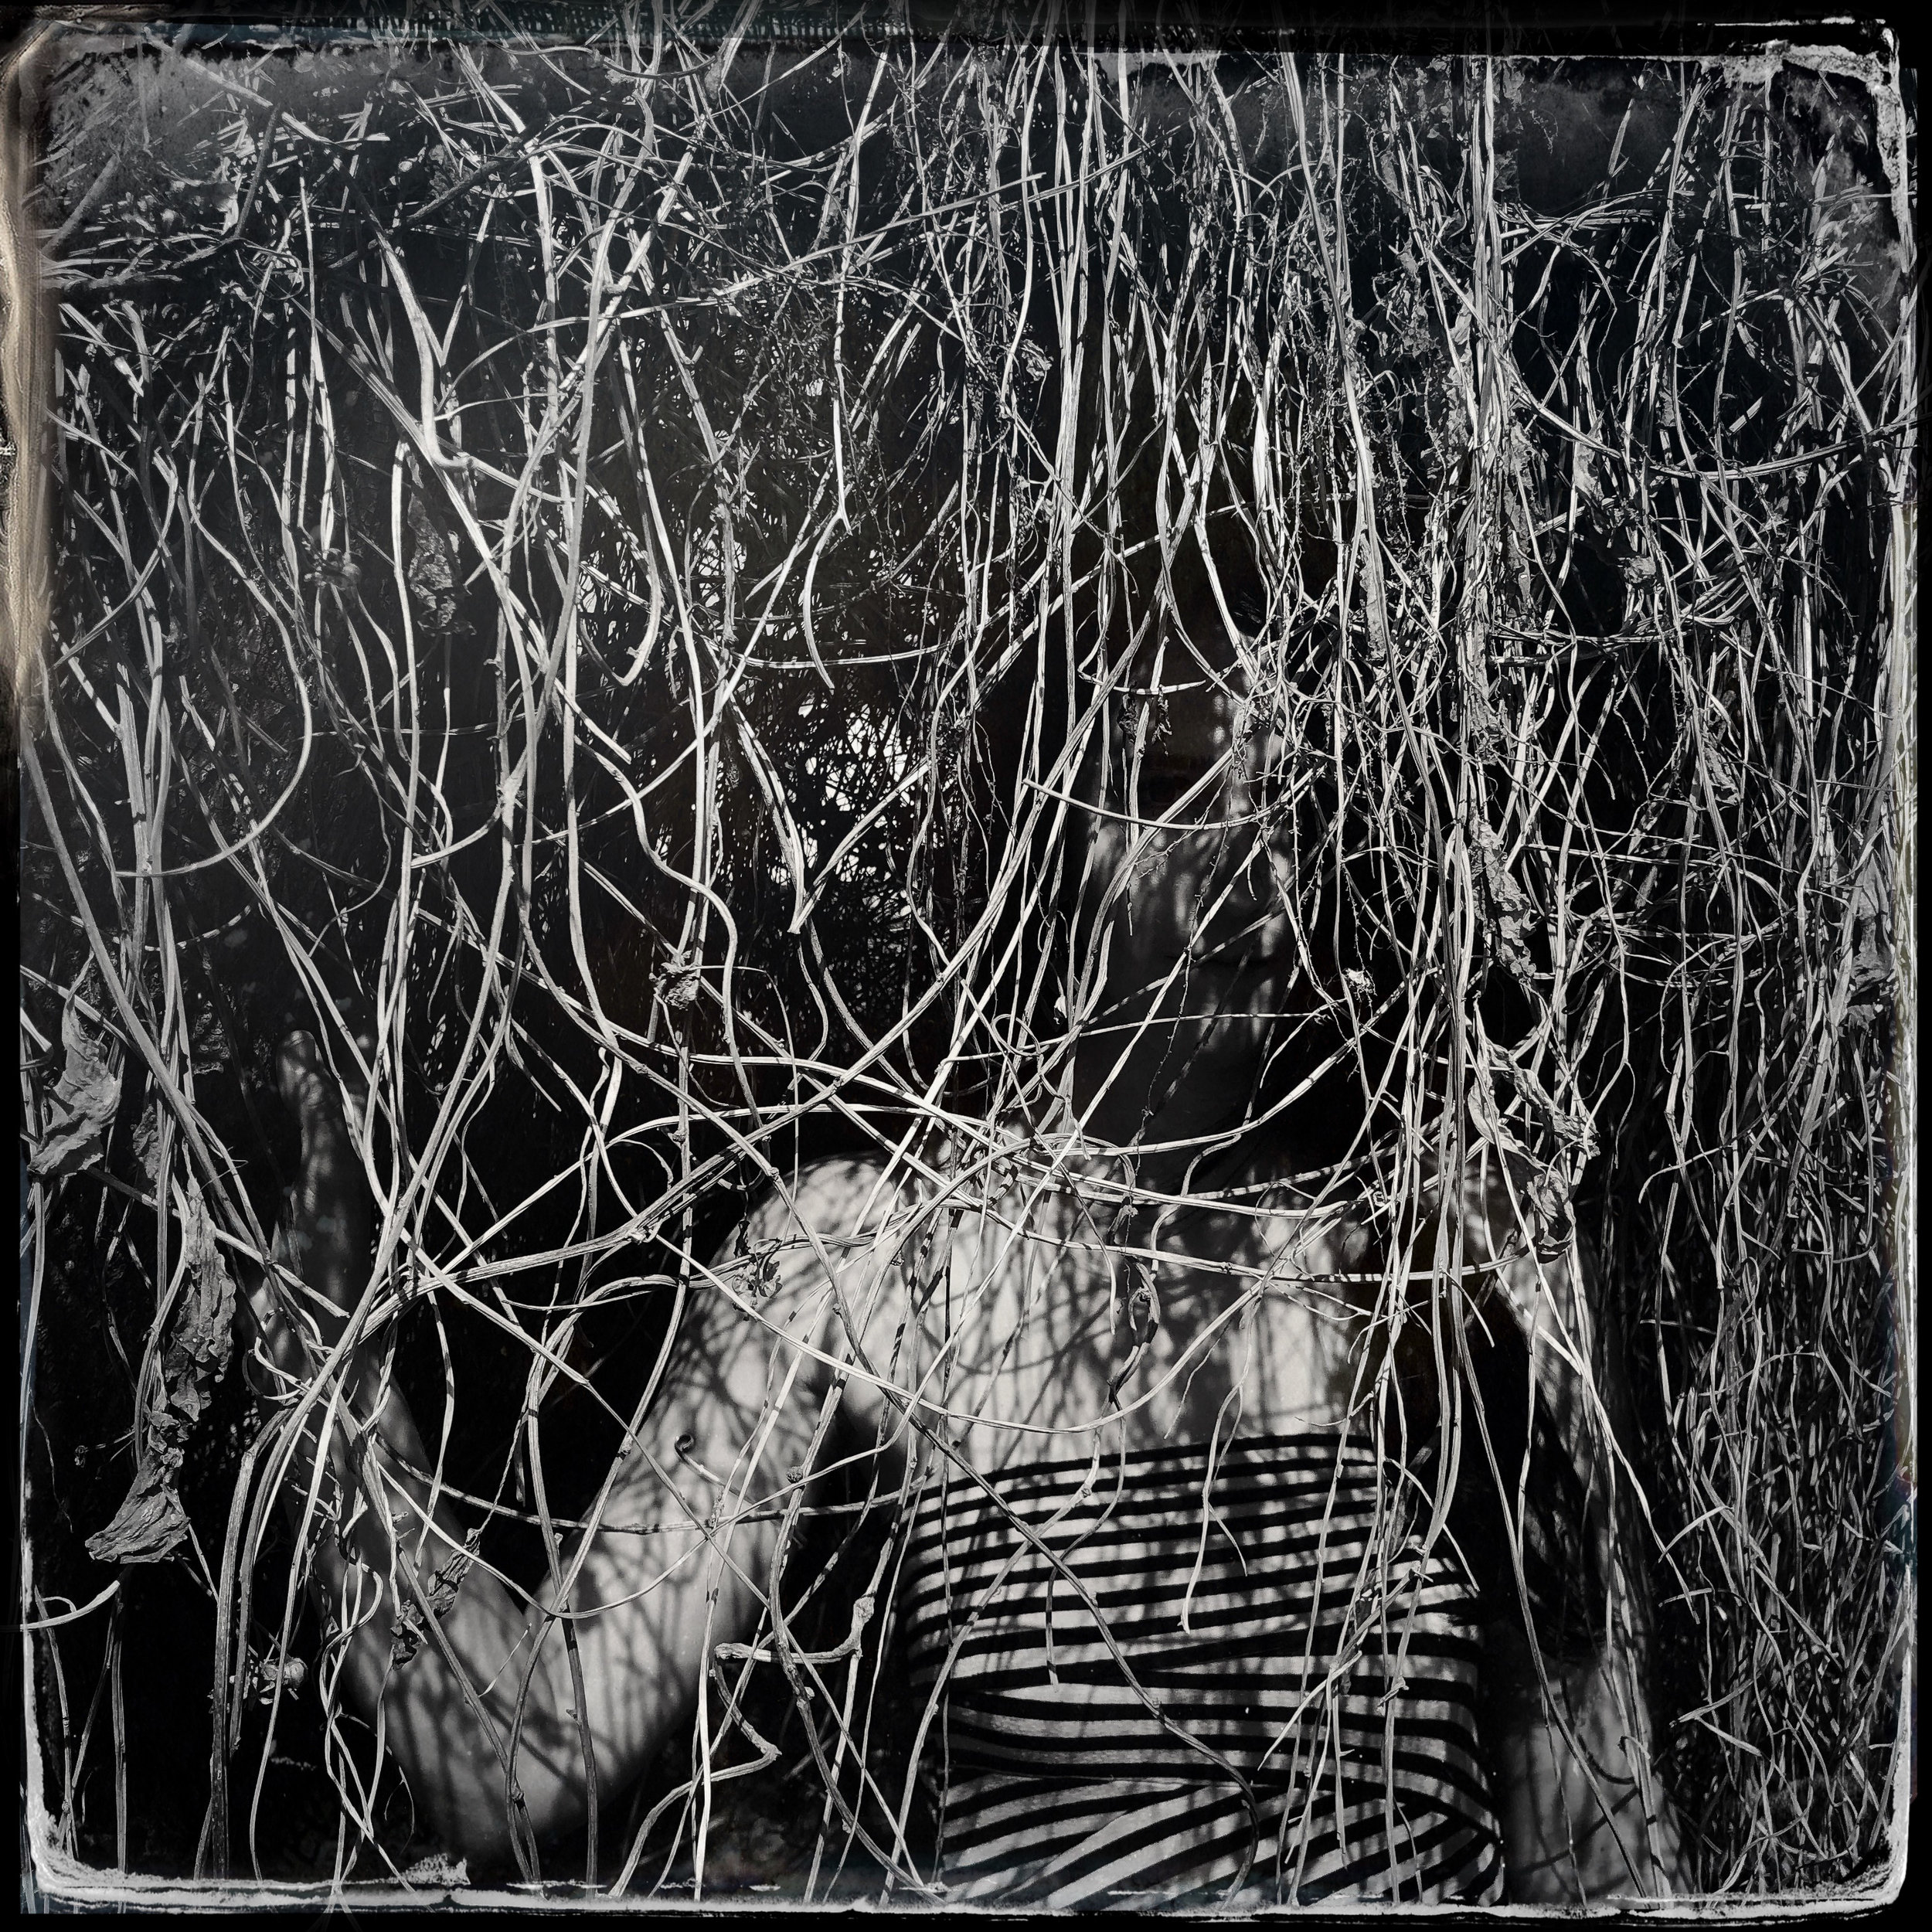 A Bower Is Heard │ Jenna underneath the vine veil at Shaxi, Yunnan, China │Collaboration with Douglas Beasley